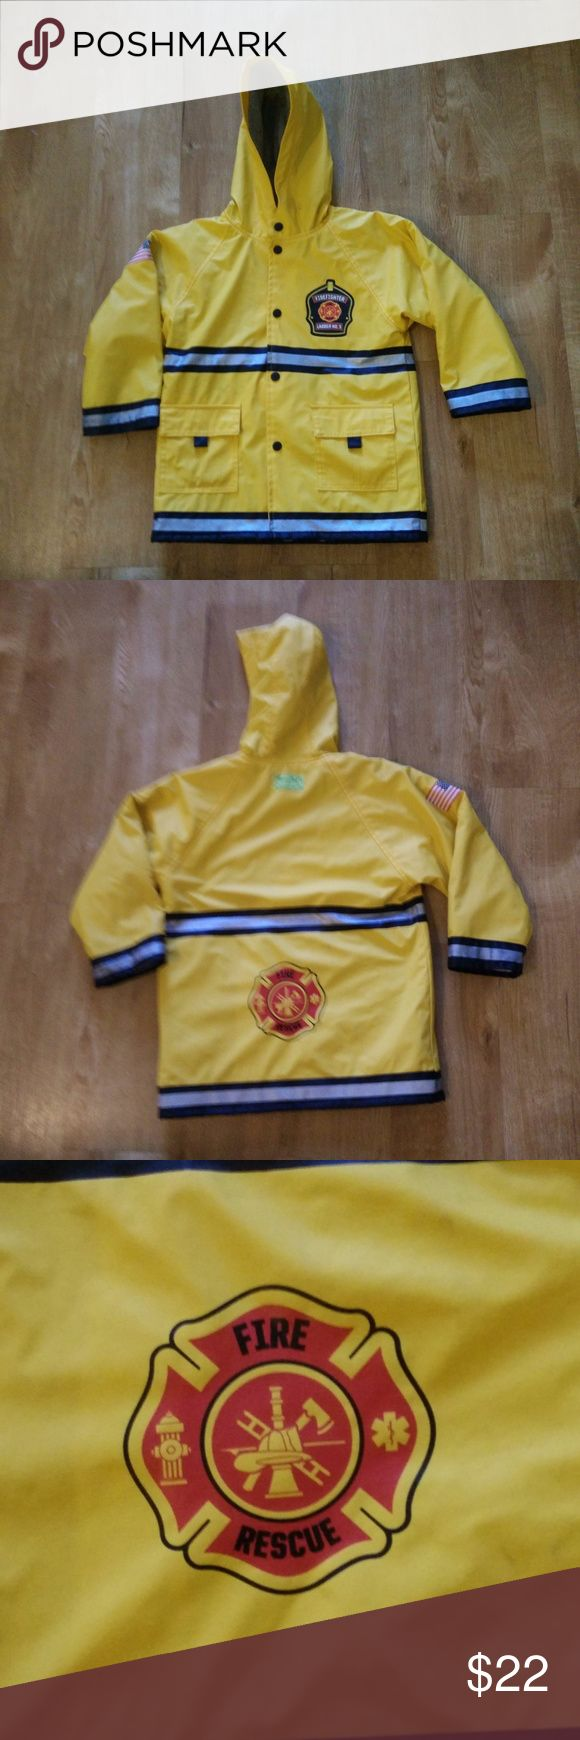 """Western Chief Batman Rain Coat Size 4T Boys Western Chief Size 4T Batman Rain Coat - Awesome in VERY NICE condition! (ref#2122)     Please check measurements for a good fit.  (Actual Measurements are taken to the best of our ability and are approximate)  Measurements:  Pit to Pit –  16""""  Length – 20.5 Western Chief Jackets & Coats Raincoats"""